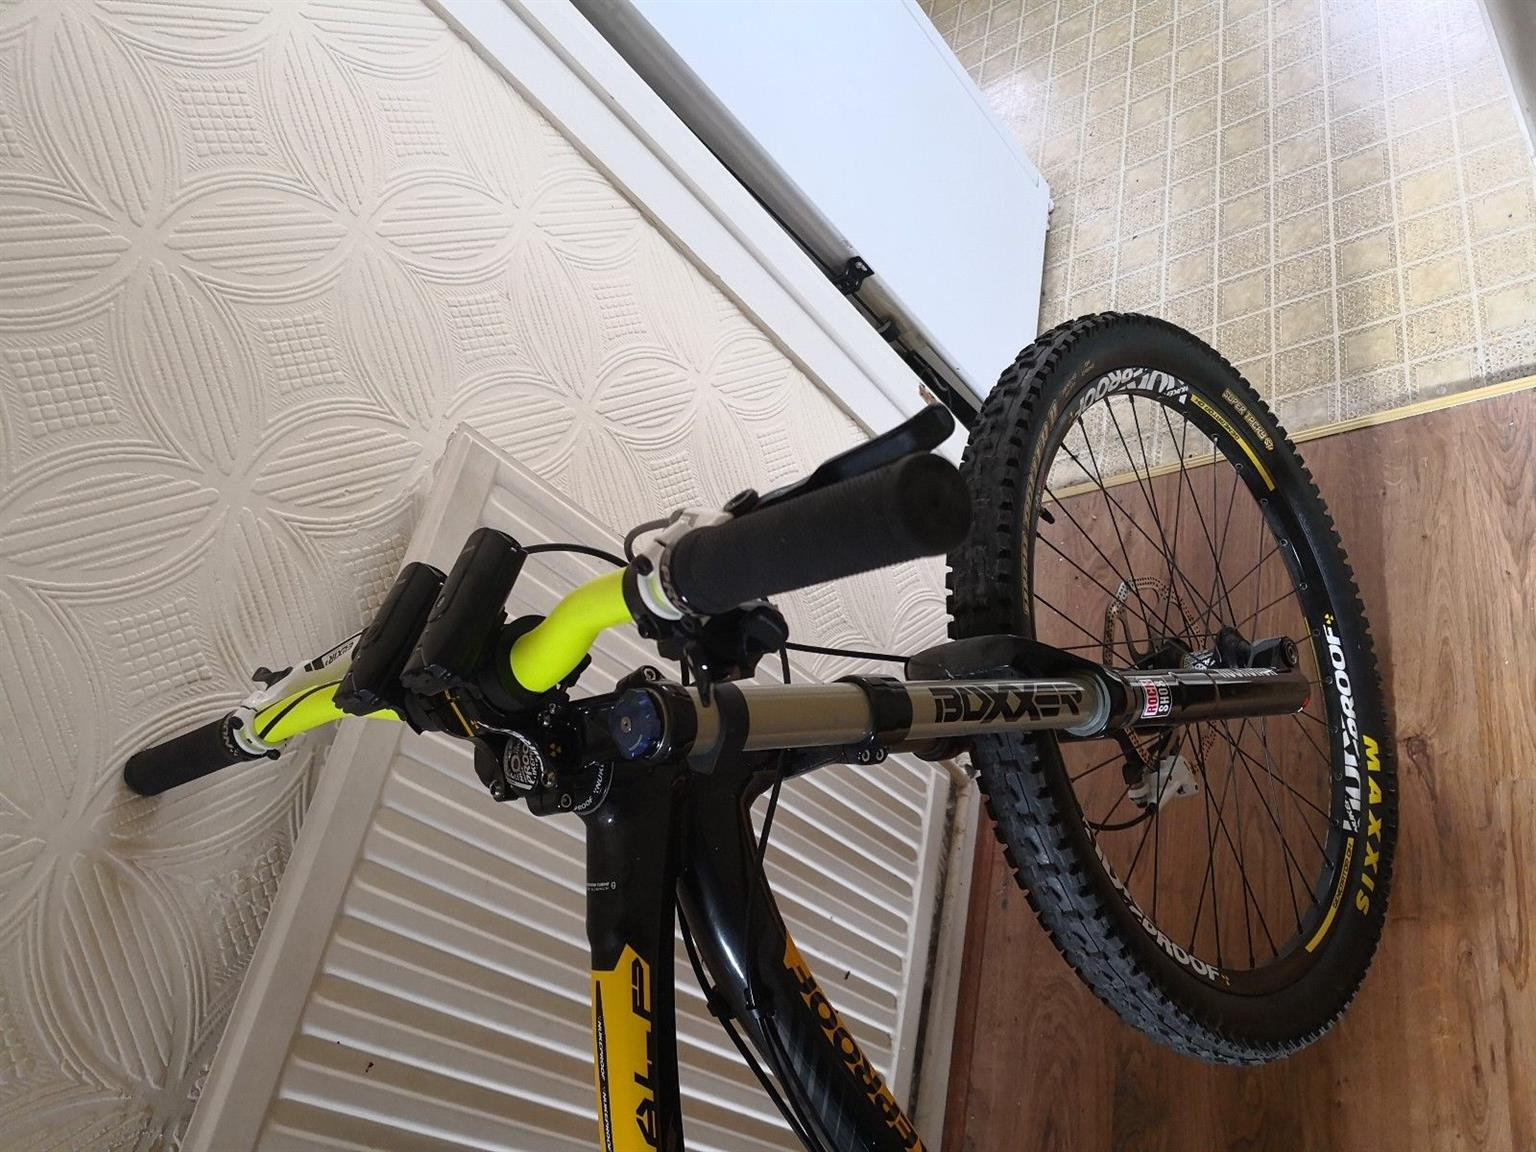 Large frame Front and rear suspension Downhill mountain bike for sale